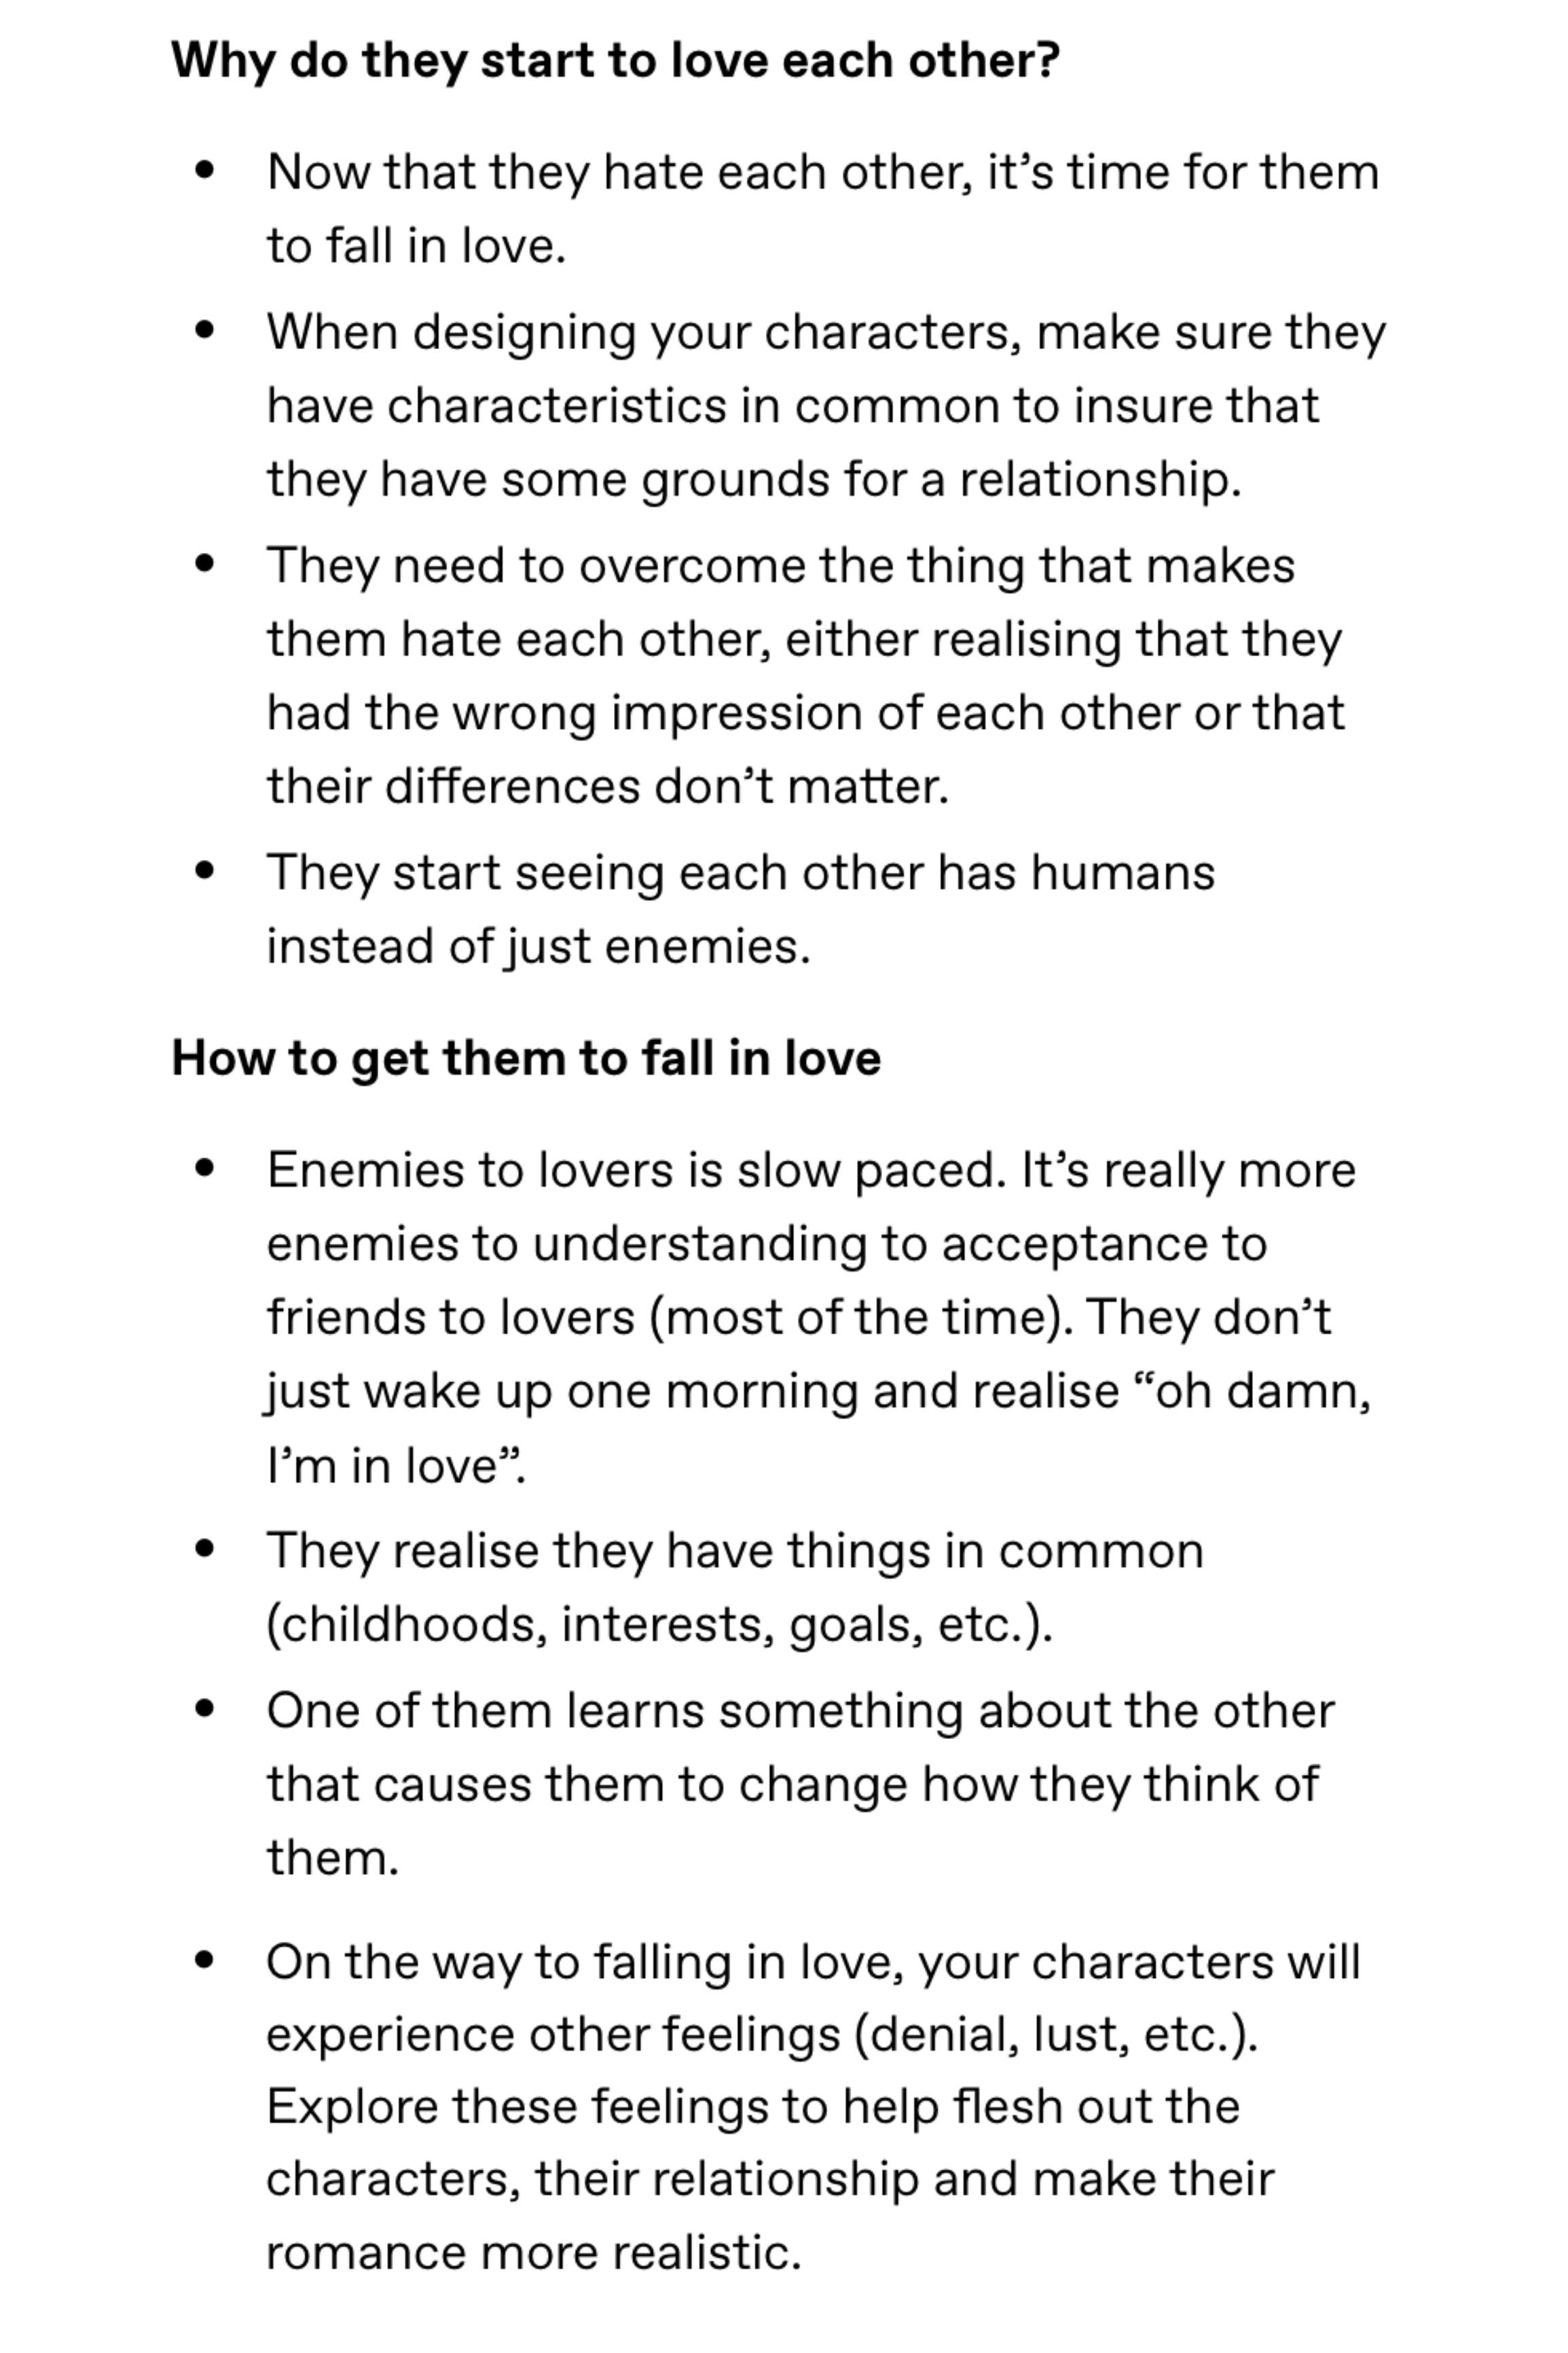 Advice For Writing Enemies to Lovers